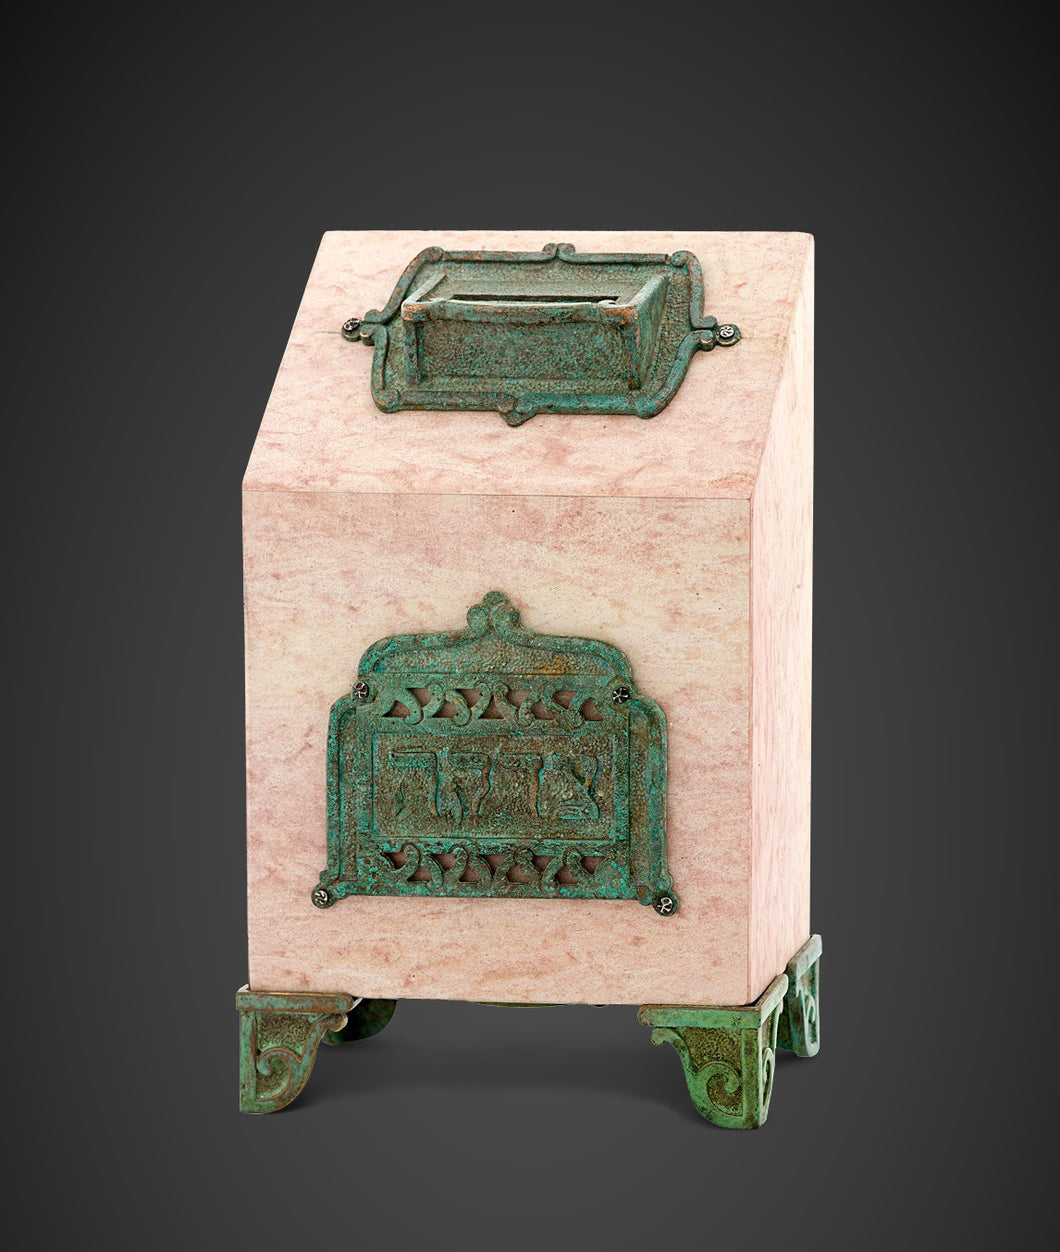 The Stone and Patina Charity box